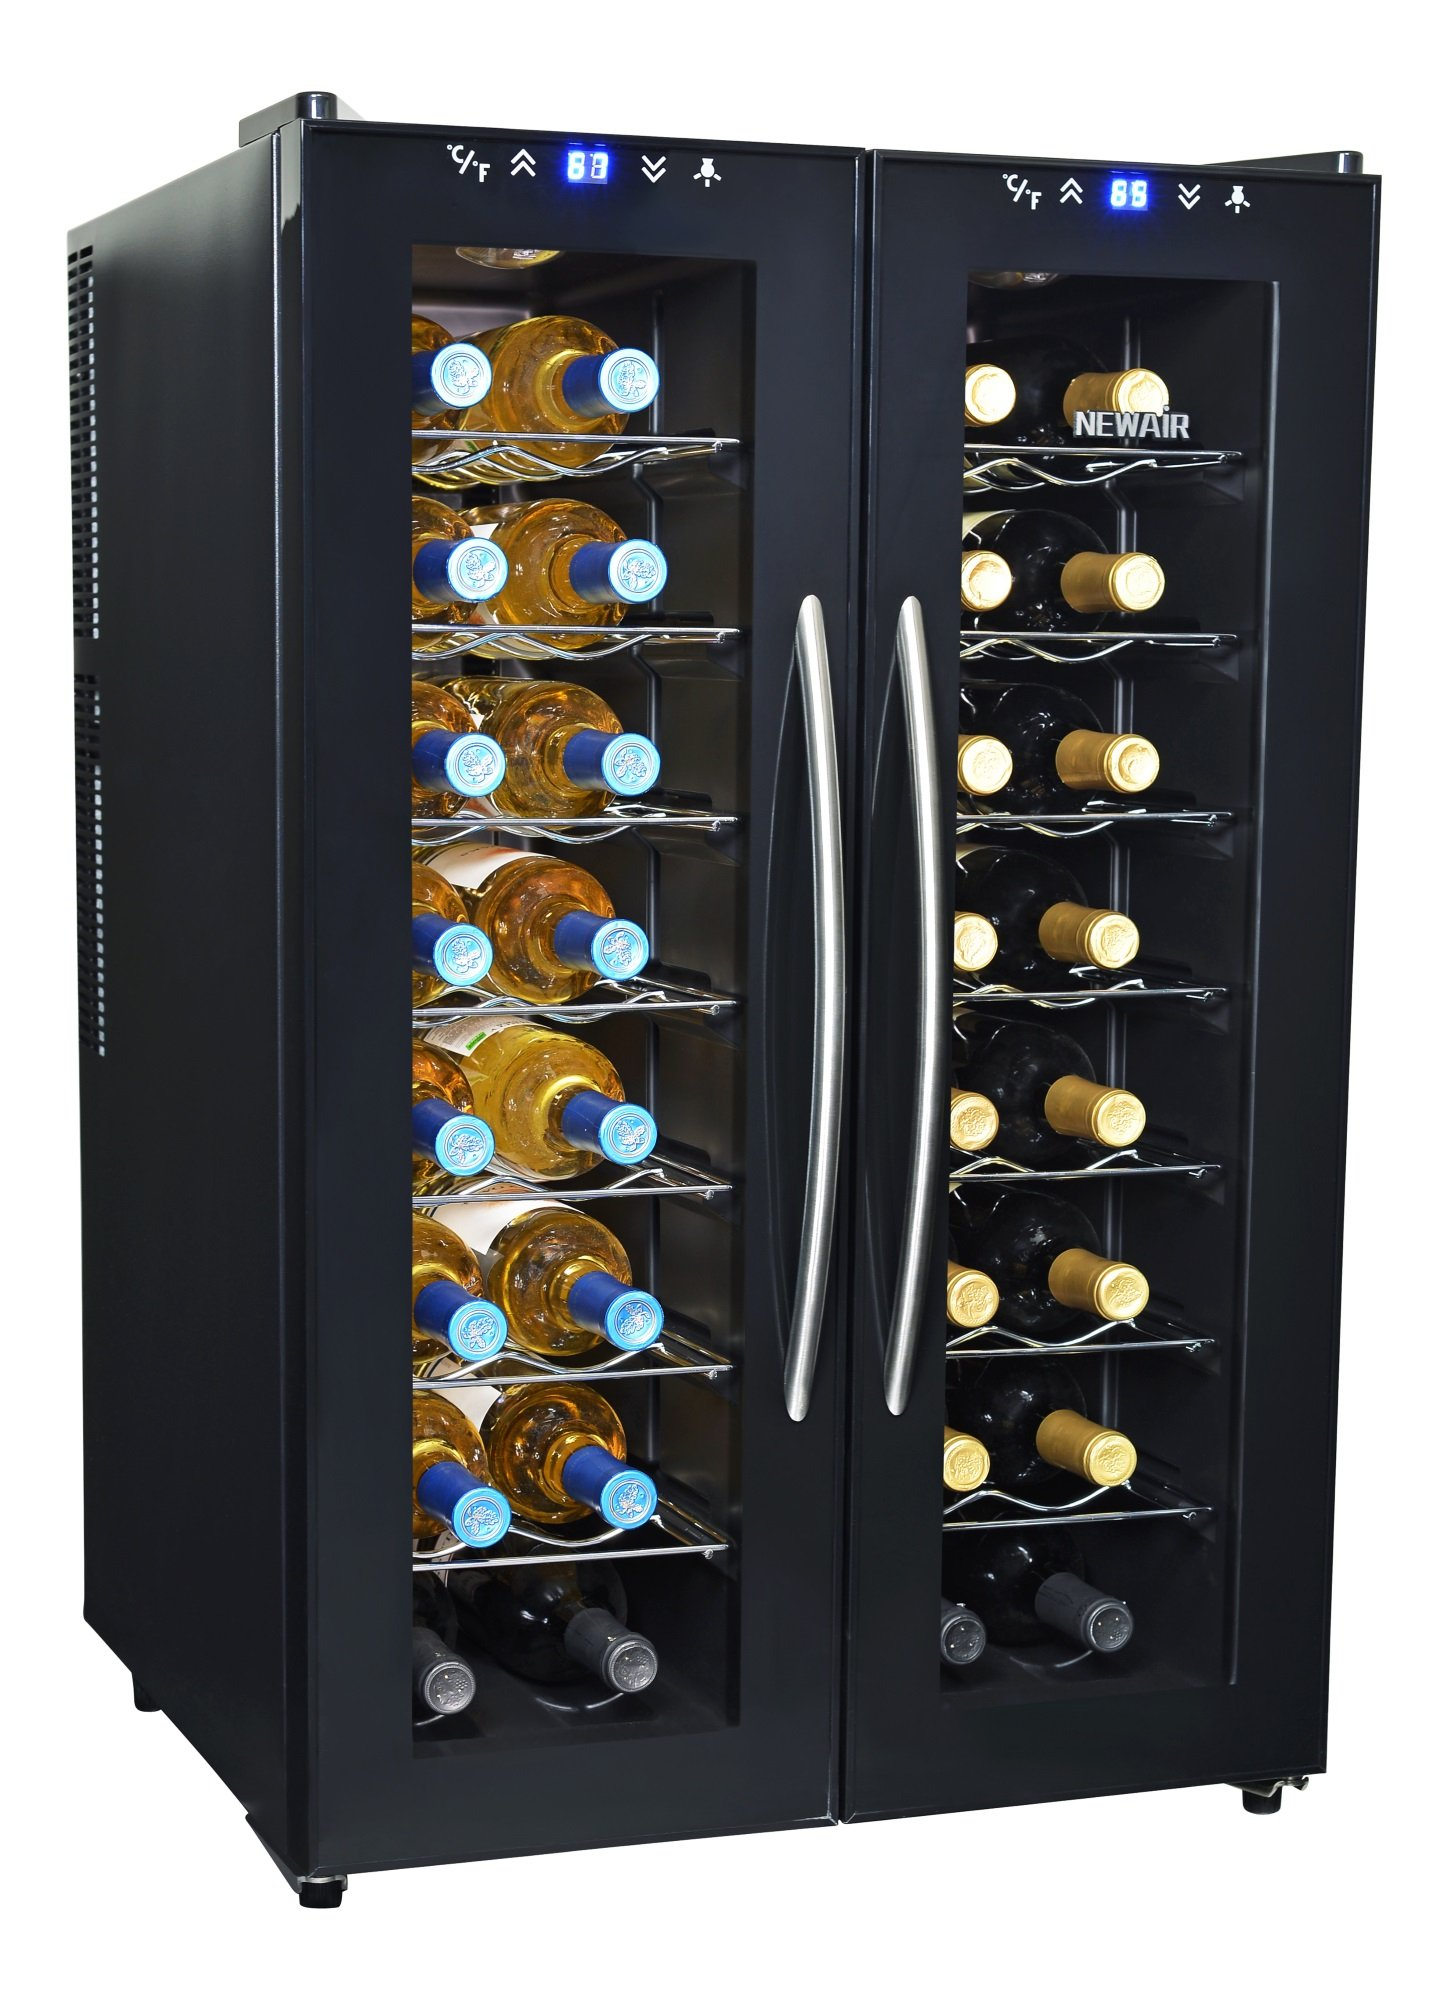 NewAir AW-320ED 32-Bottle Dual Zone Thermoelectric Wine Cooler by NewAir (Image #3)